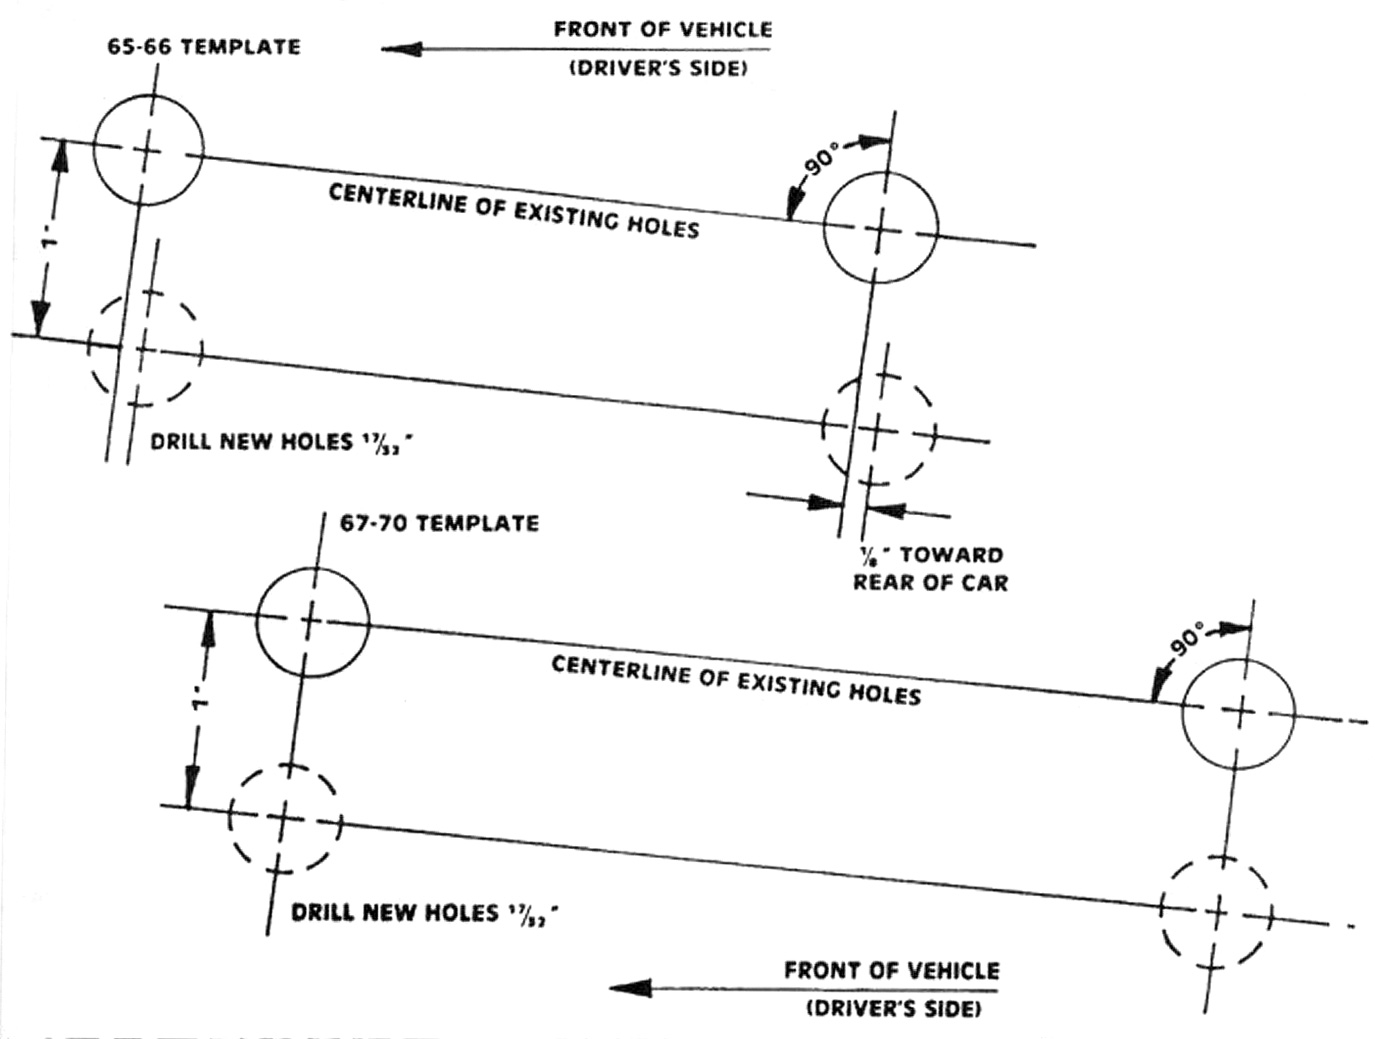 1967 camaro panel diagram with Bump on Early Bronco Fuse Box Diagram as well 12b1 moreover Bump furthermore Wiring Diagram For Relays in addition Instrument Light Fuse Keeps Blowing.